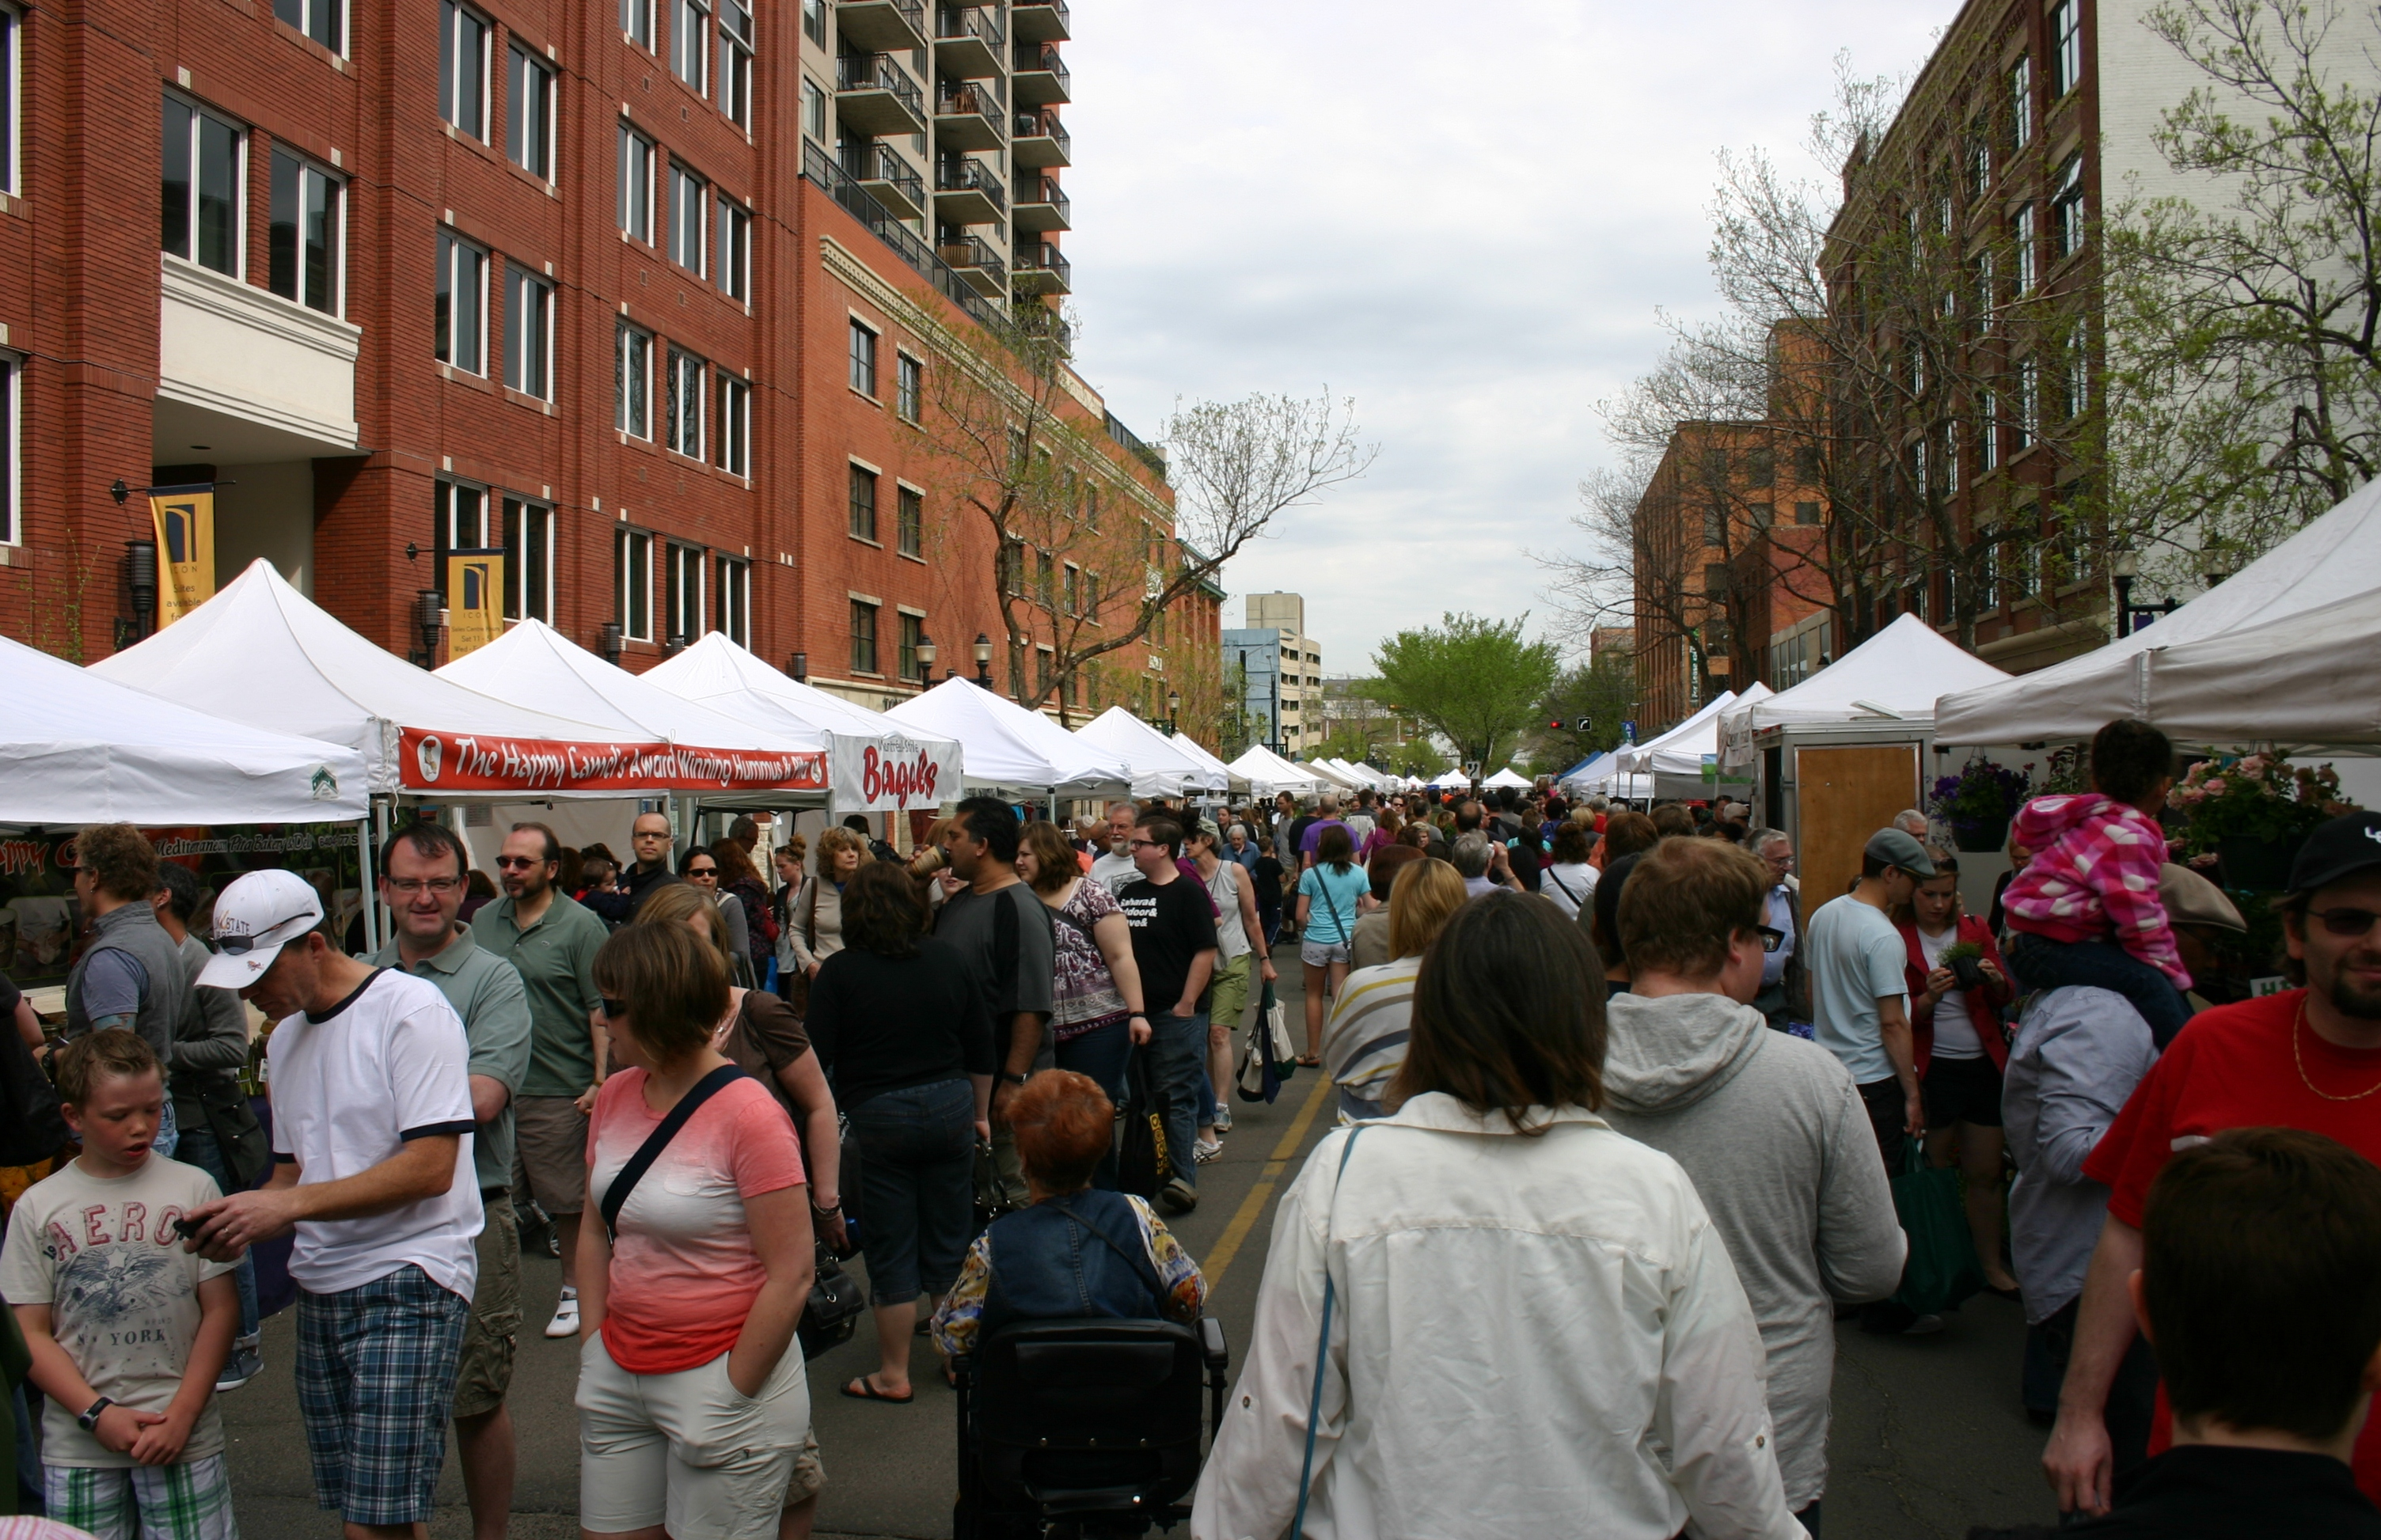 The street teems with people when the market is open on Saturdays from May to October.